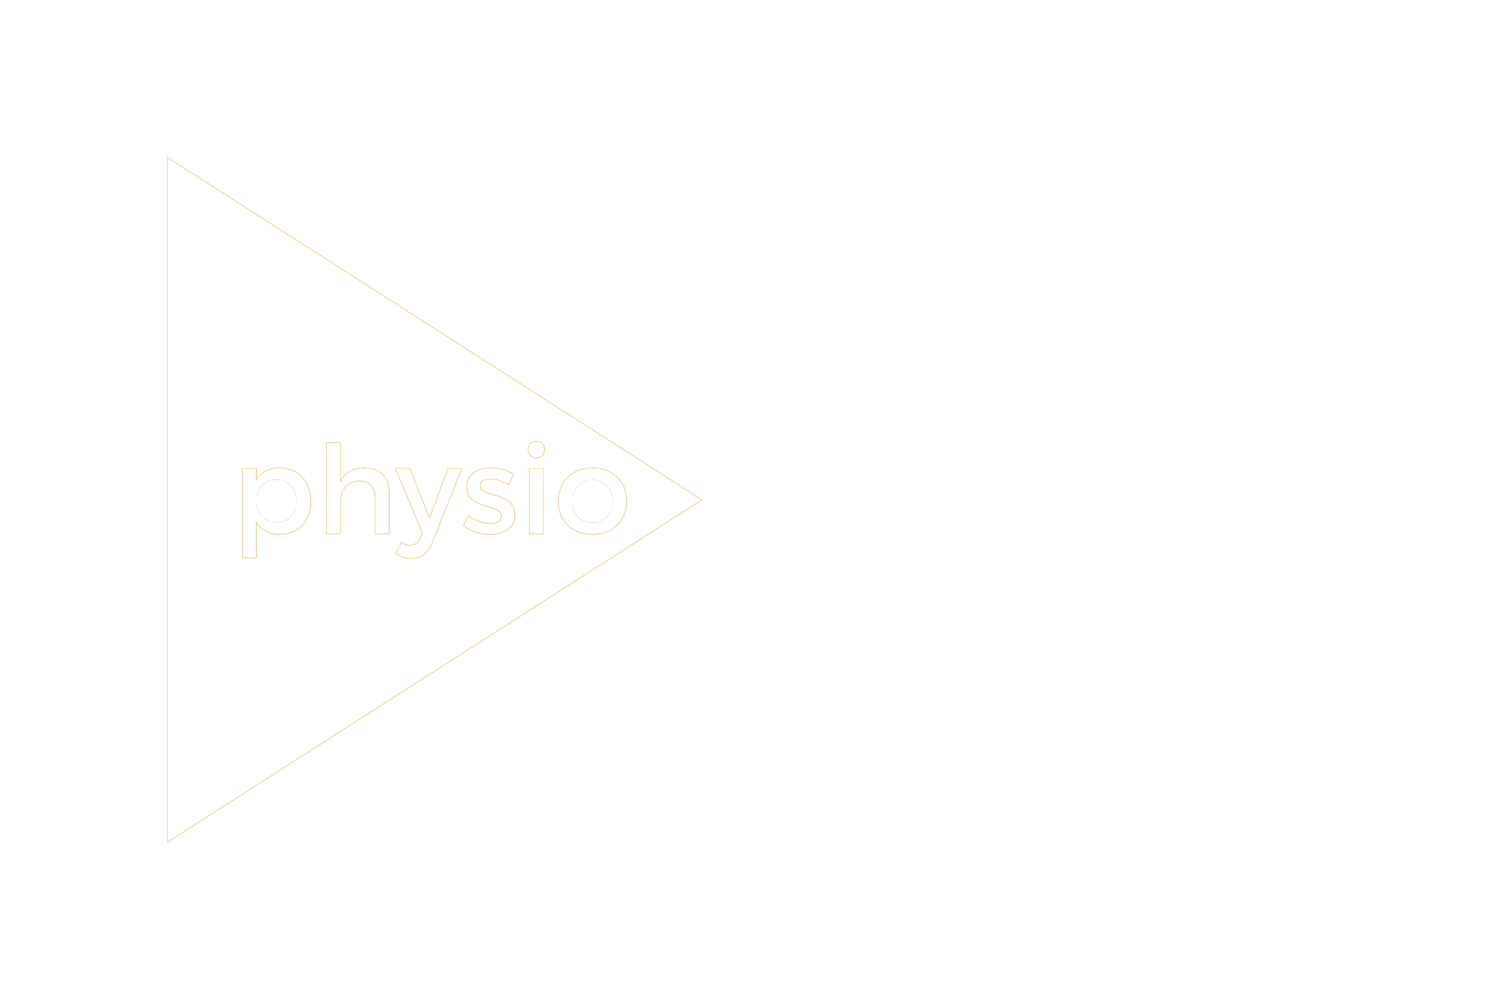 Physio Performance - Physical Therapy. Training. Sports Science.